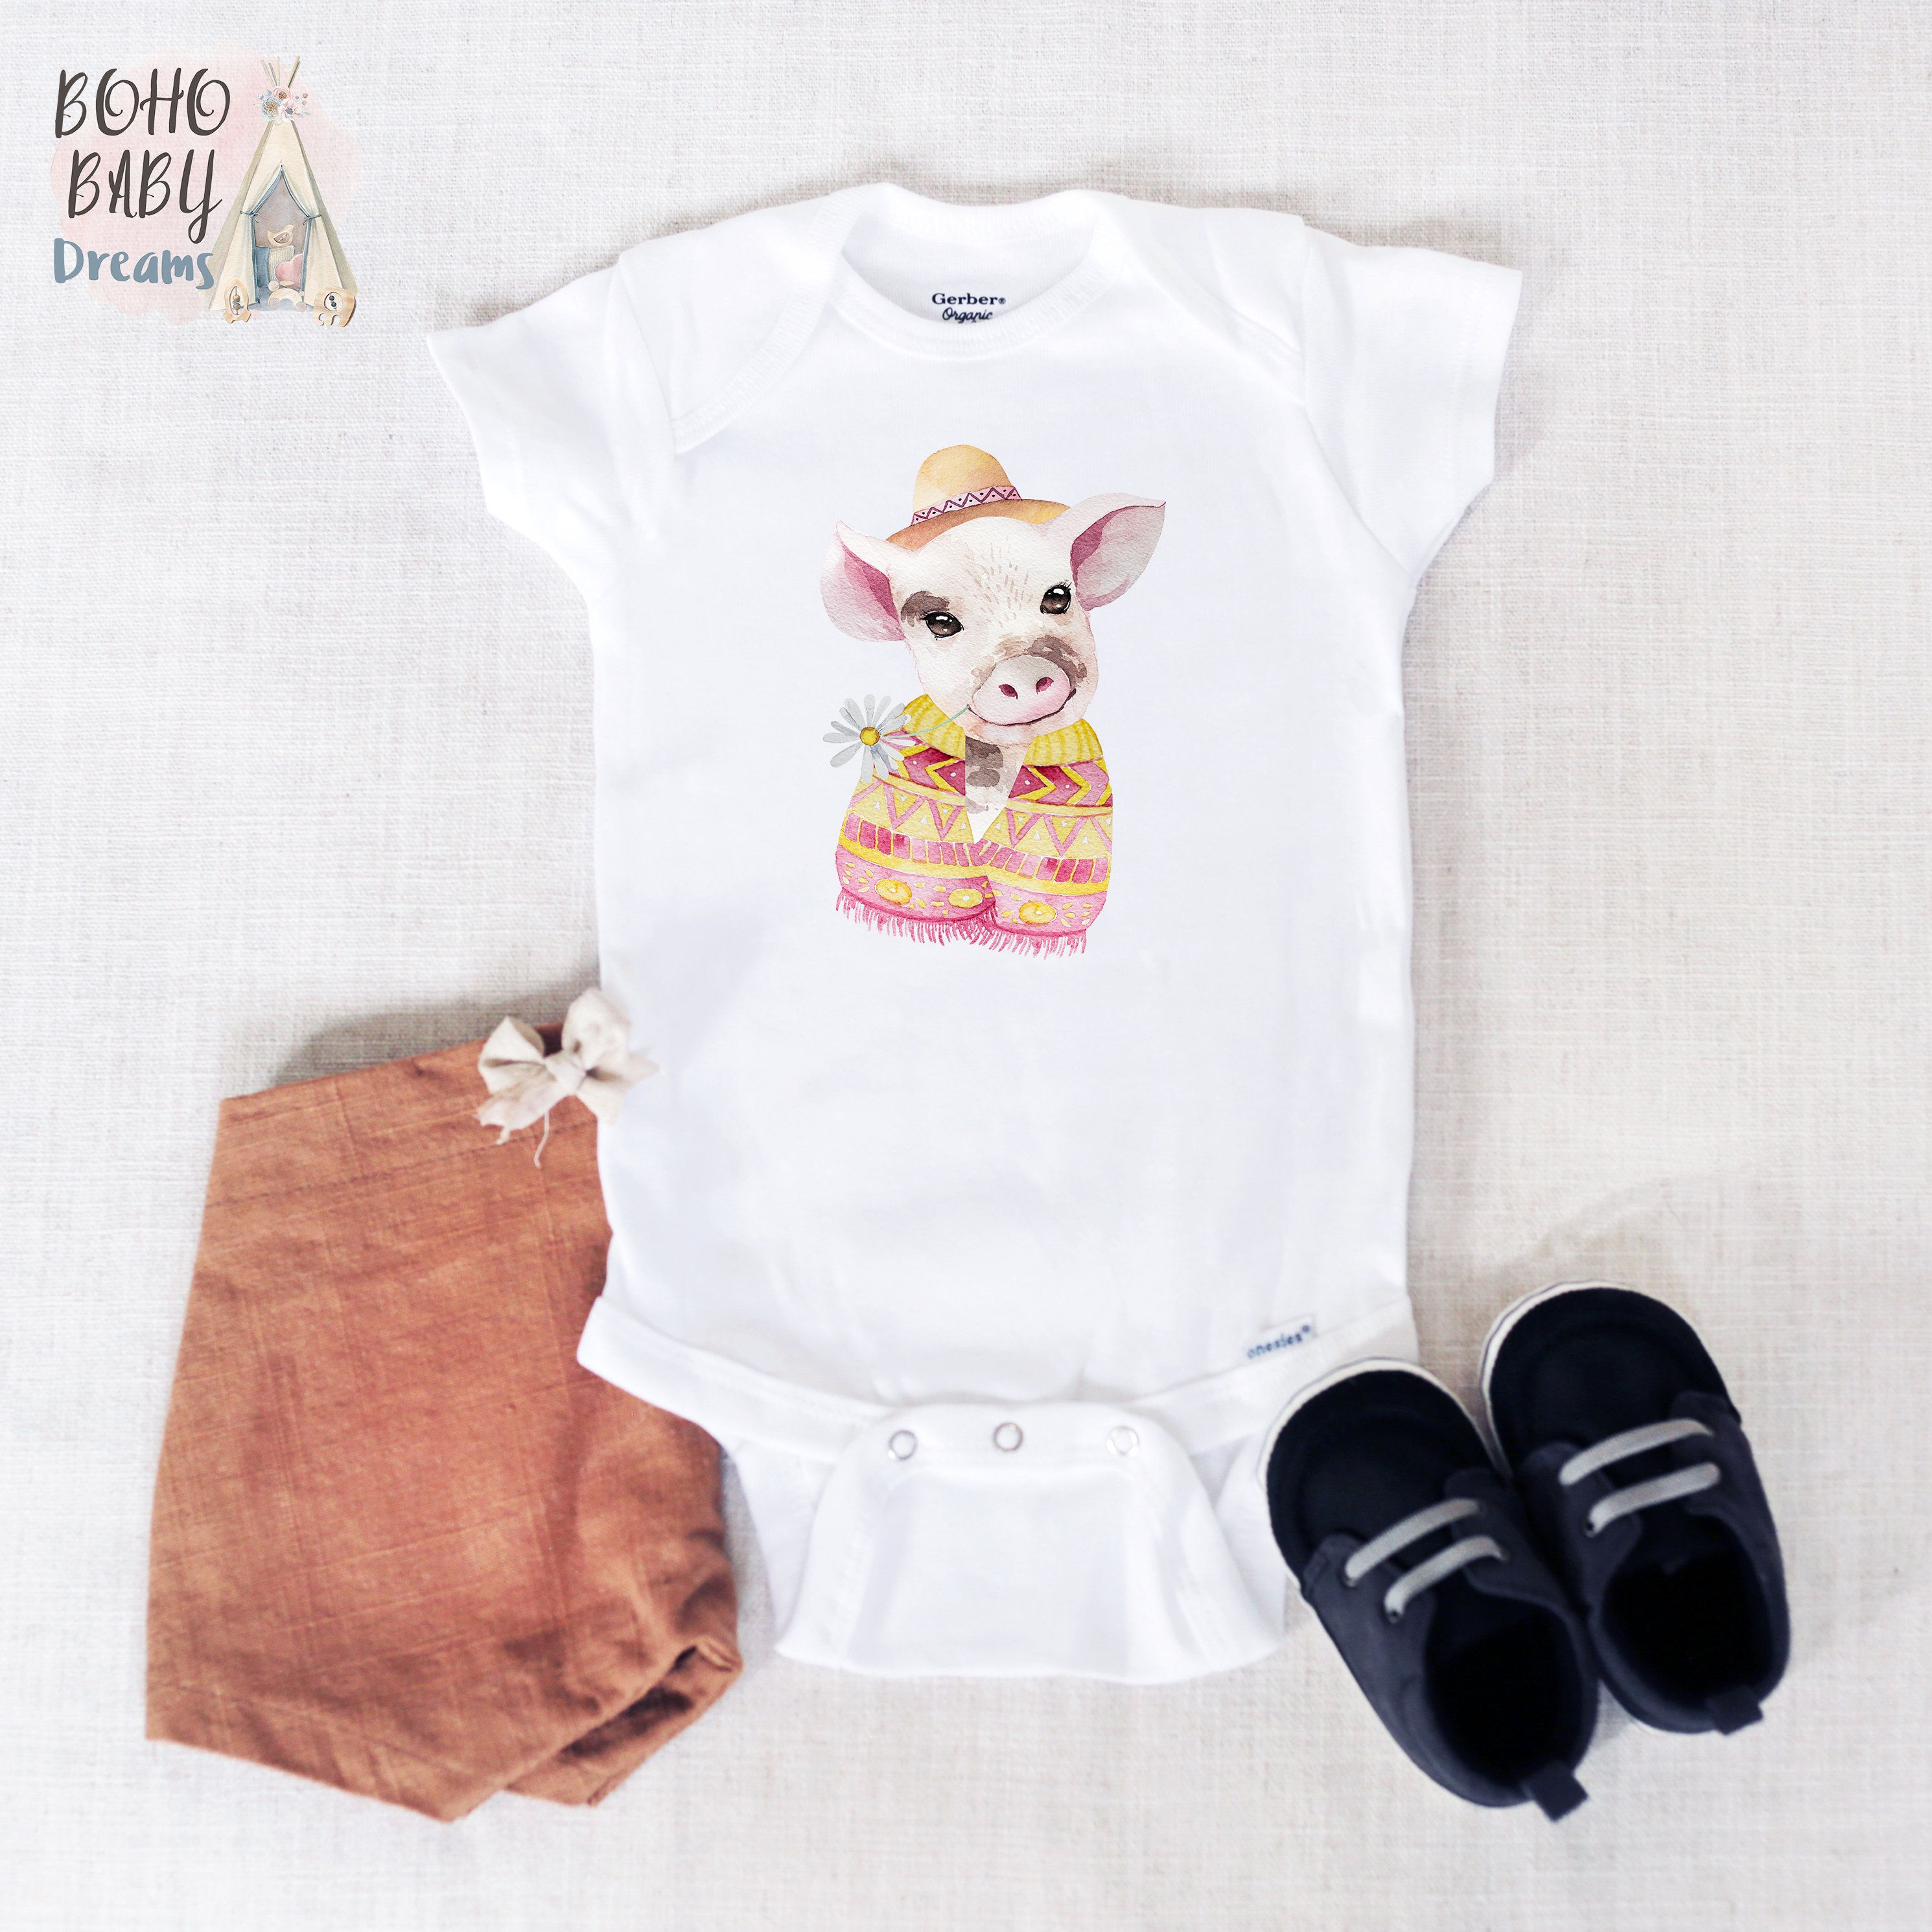 b9c2e8cf0 Hat Pig Baby Onesie®, Pig Baby Clothes, Funny Pig Baby Outfit, Cute ...